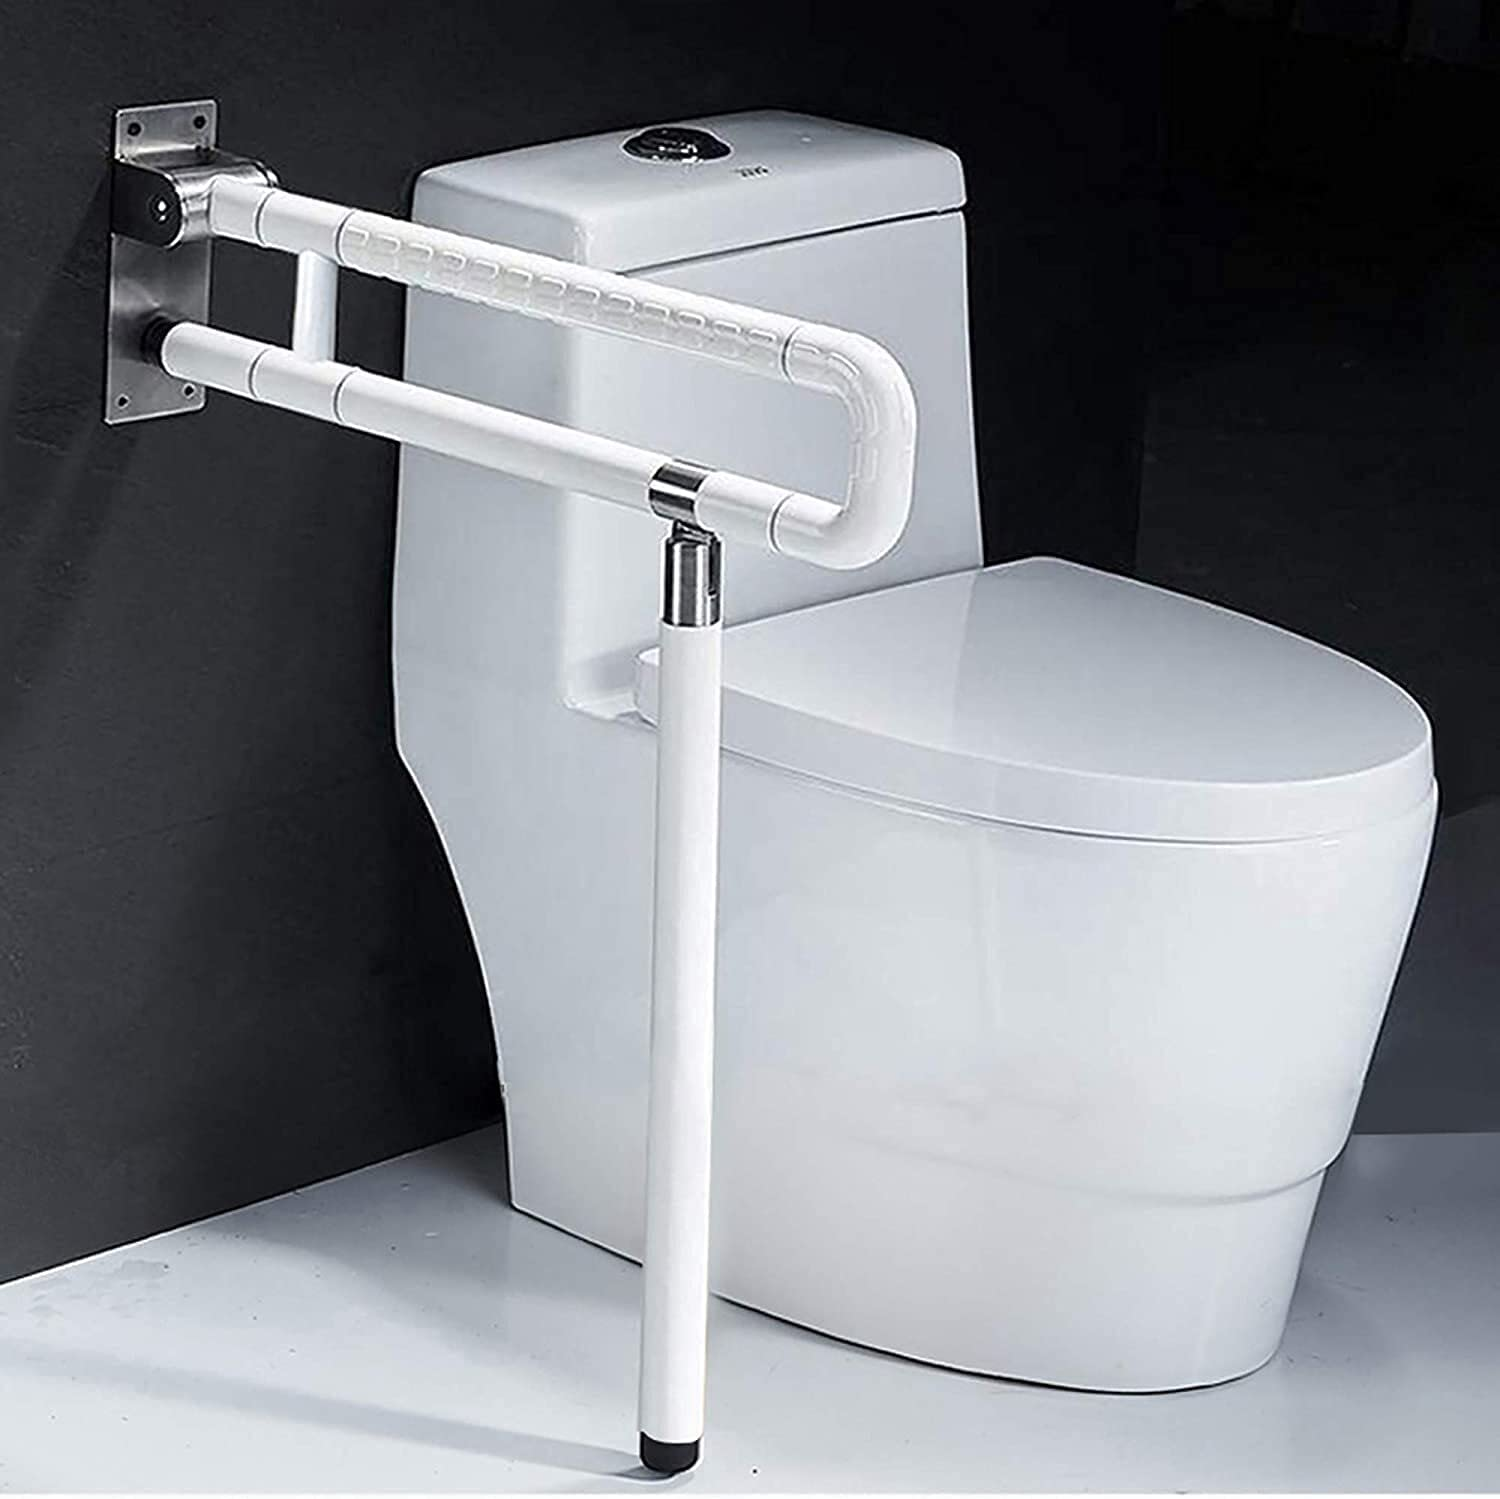 Bath Max 70% OFF Shower Grab Bars Foldable Bar Ranking TOP19 304 Ste Toilet Stainless